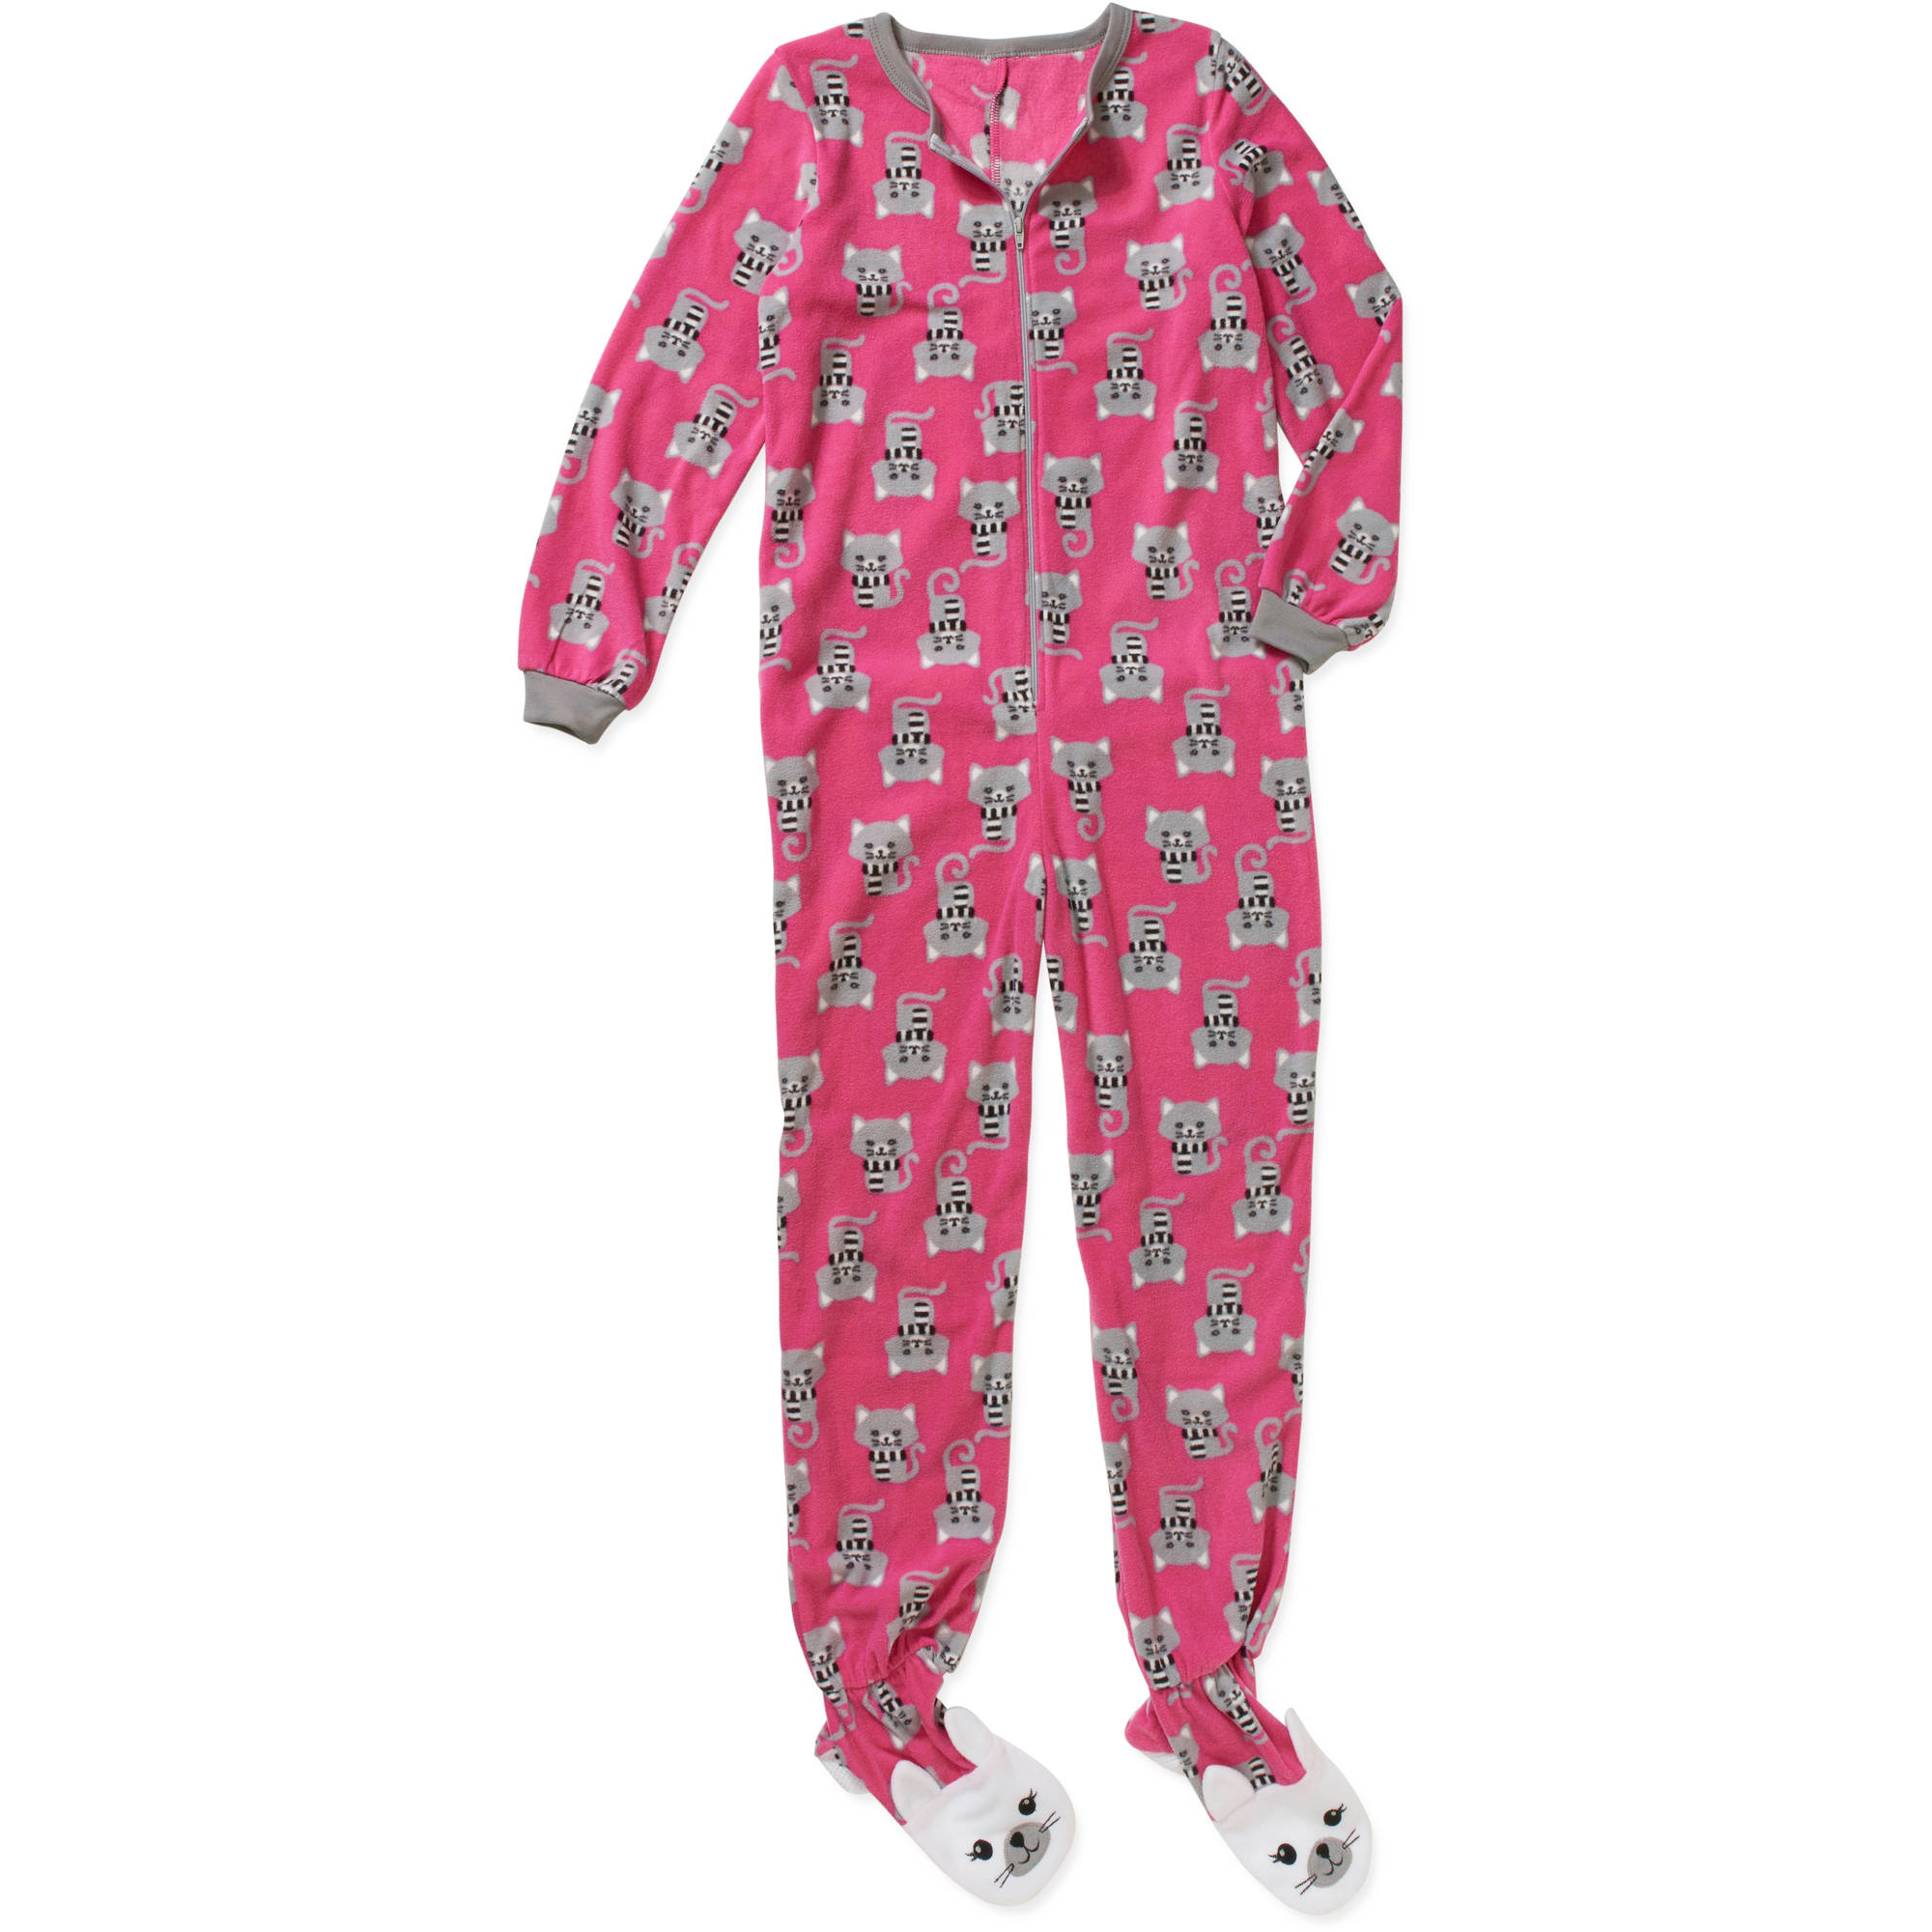 Girls' Fleece Pajama Footed Sleeper - Walmart.com